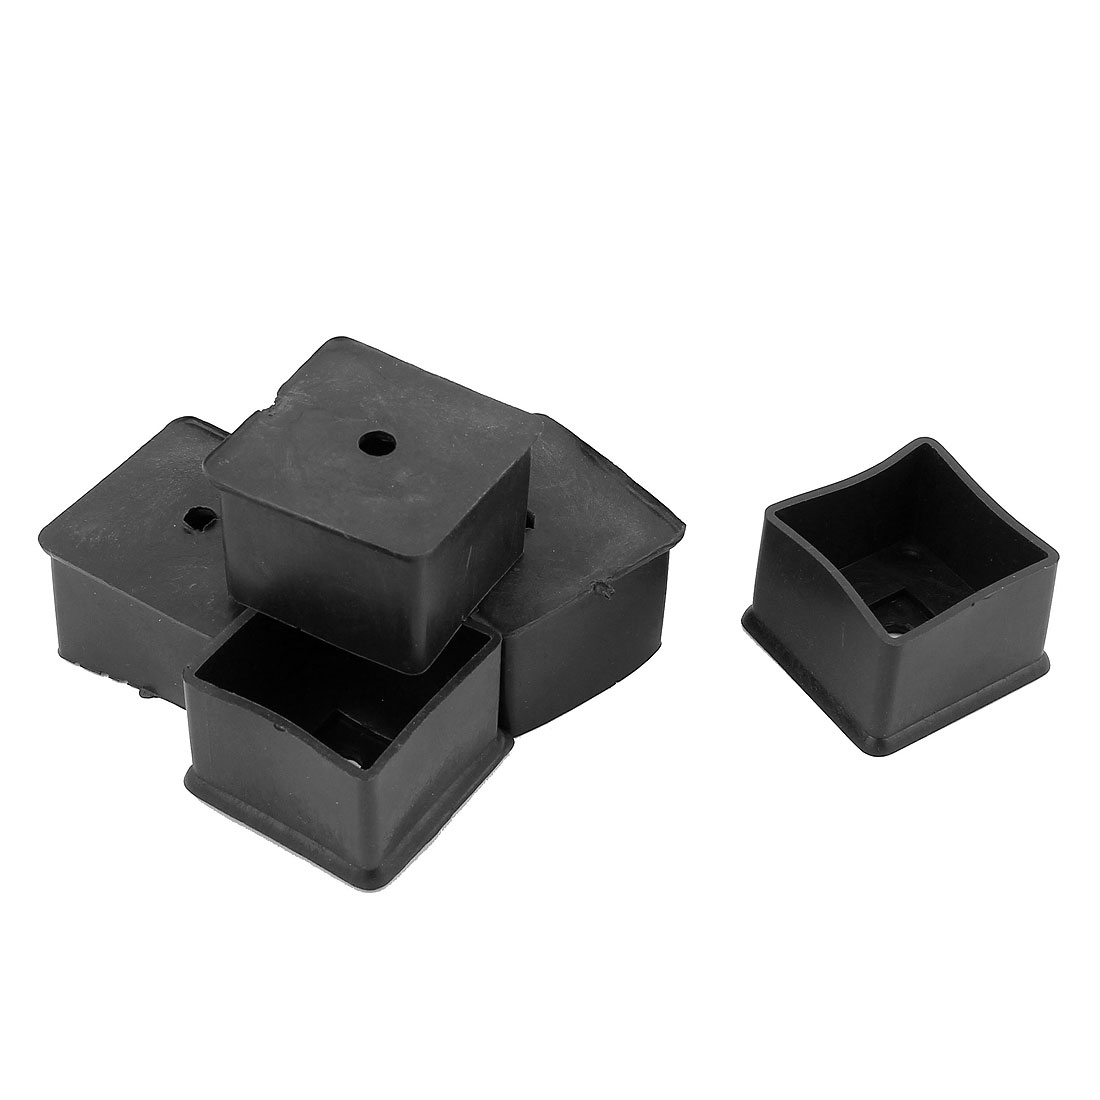 Furniture Legs 40mmx40mm Square Shaped Rubber Foot Guard Covers Black 5 Pcs